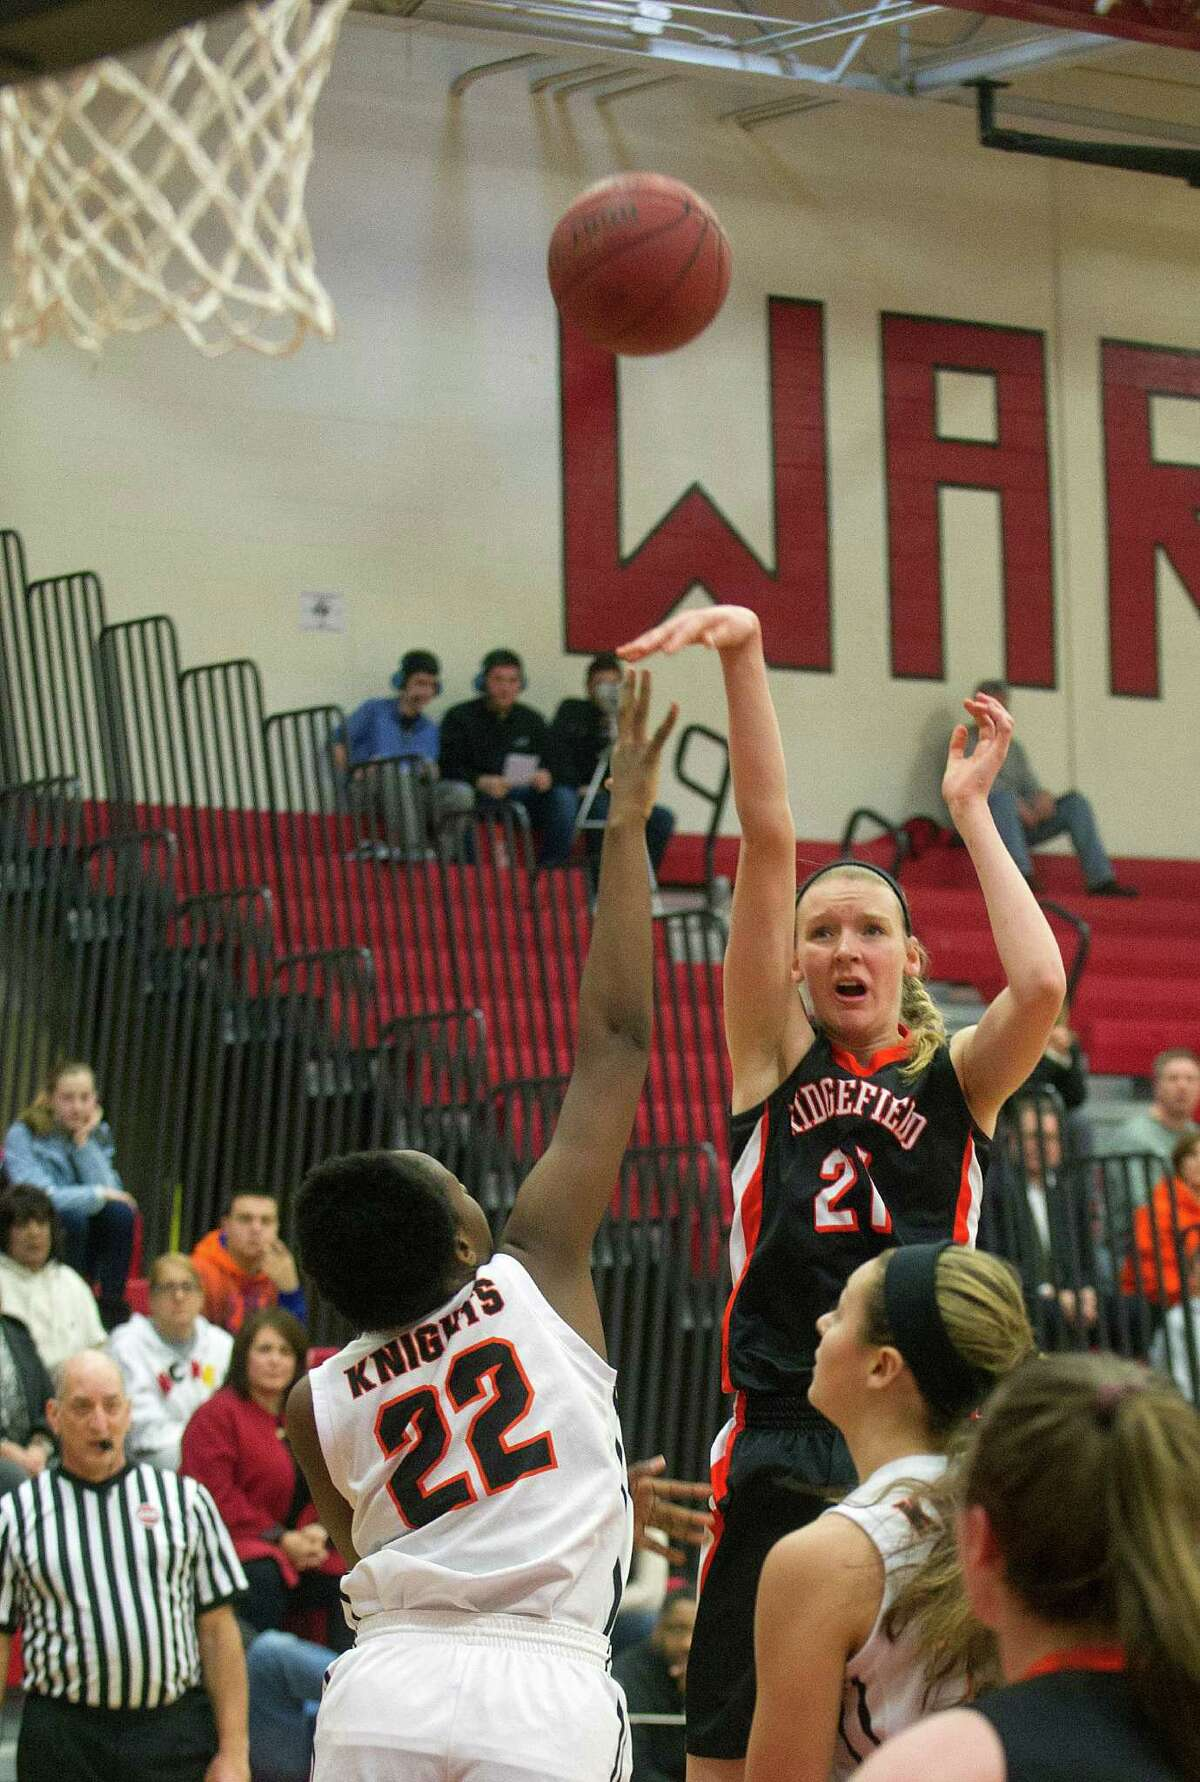 Ridgefield's Rebecca Lawrence takes a shot against Stamford during Saturday's FCIAC quarterfinal game at Fairfield Warde High School on February 21, 2015.